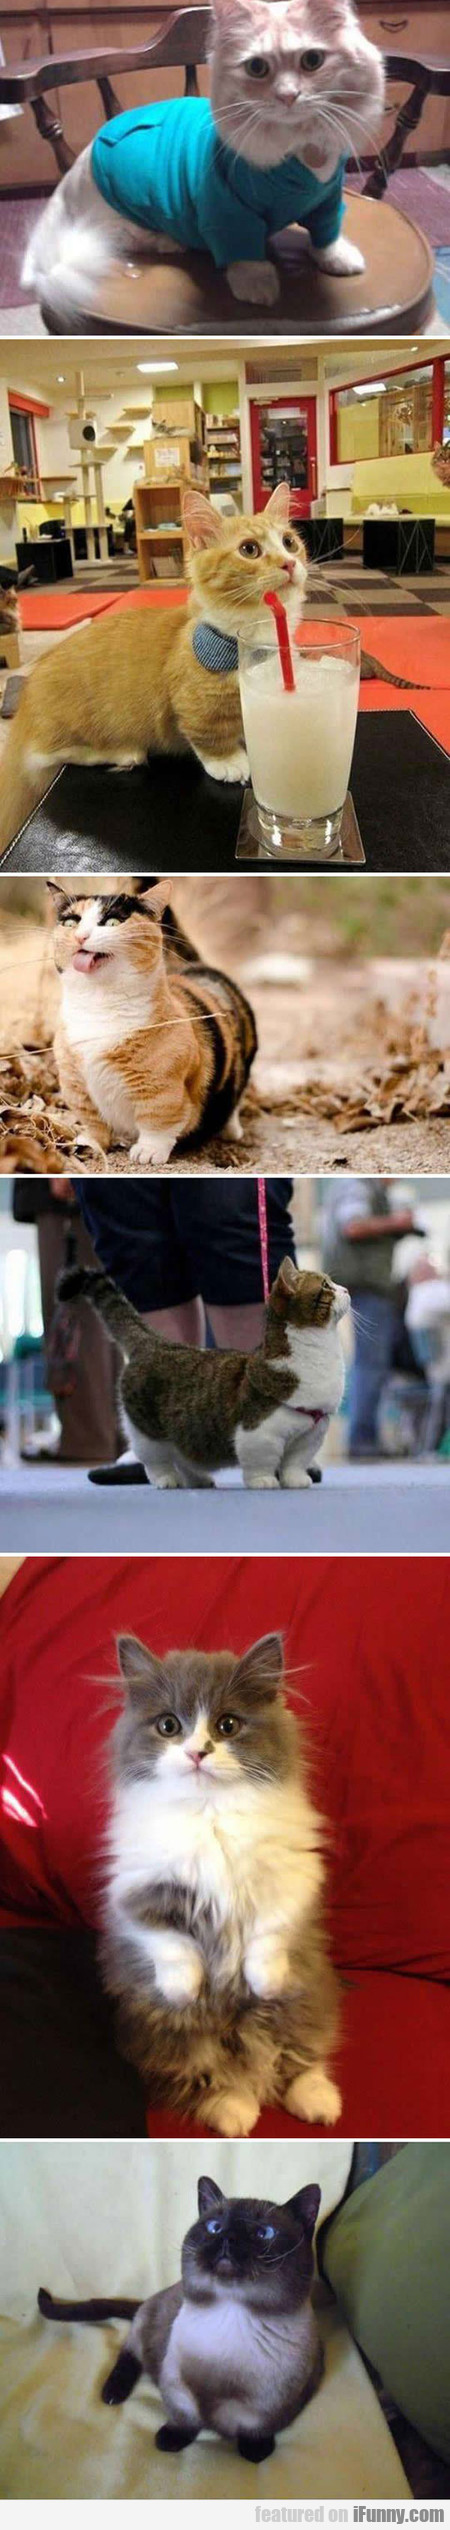 Munchkins Are The Corgis Of Cats